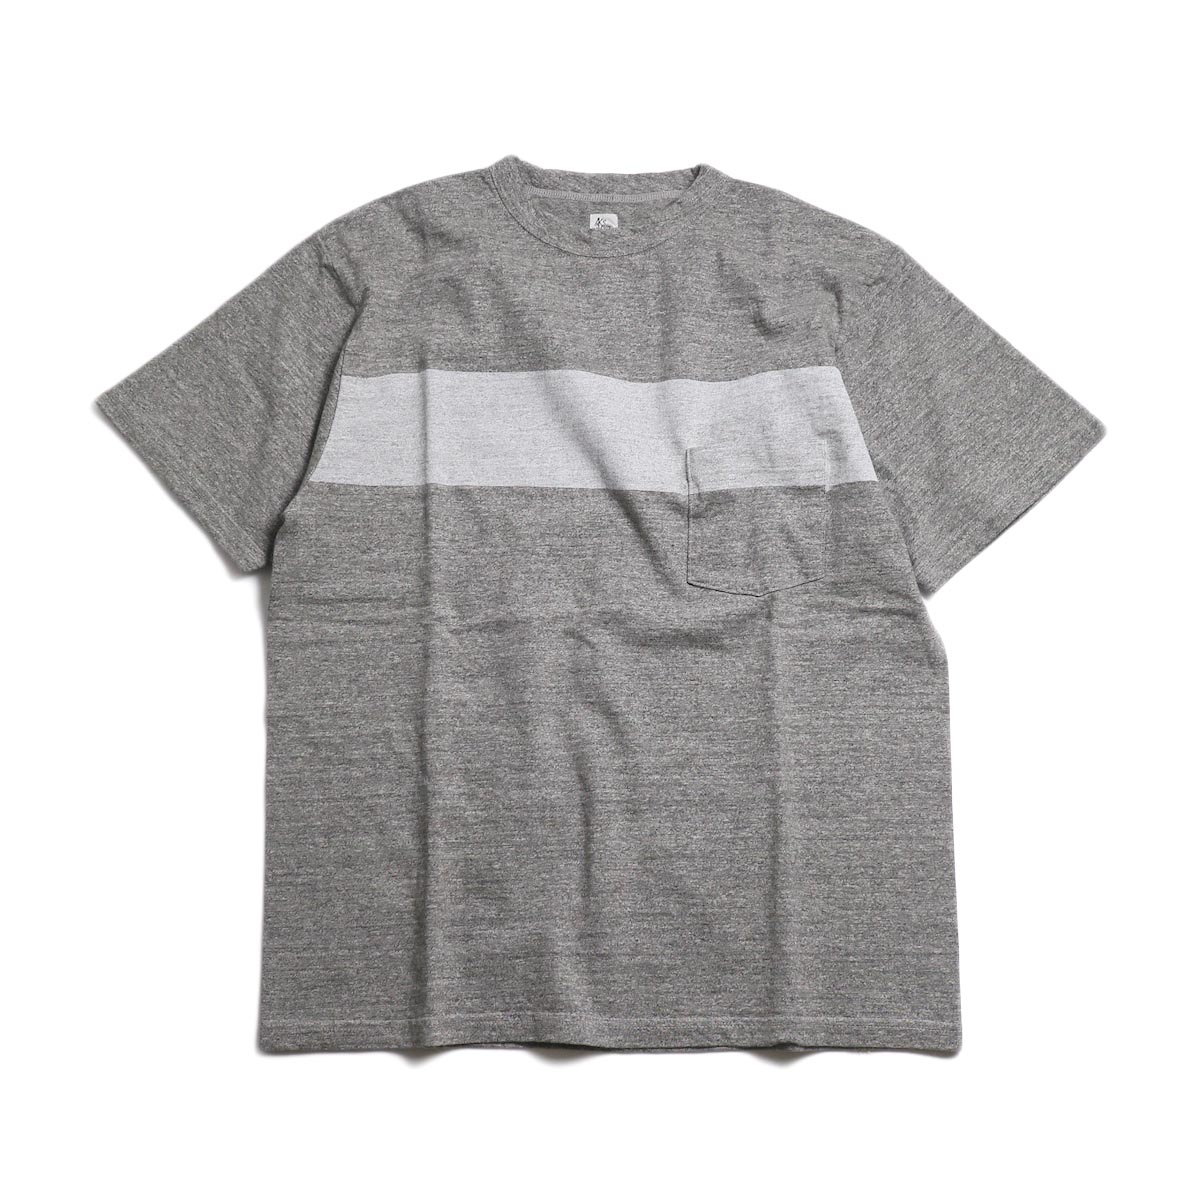 Kaptain Sunshine / West Coast Tee -Feather Grey×Light Grey Line